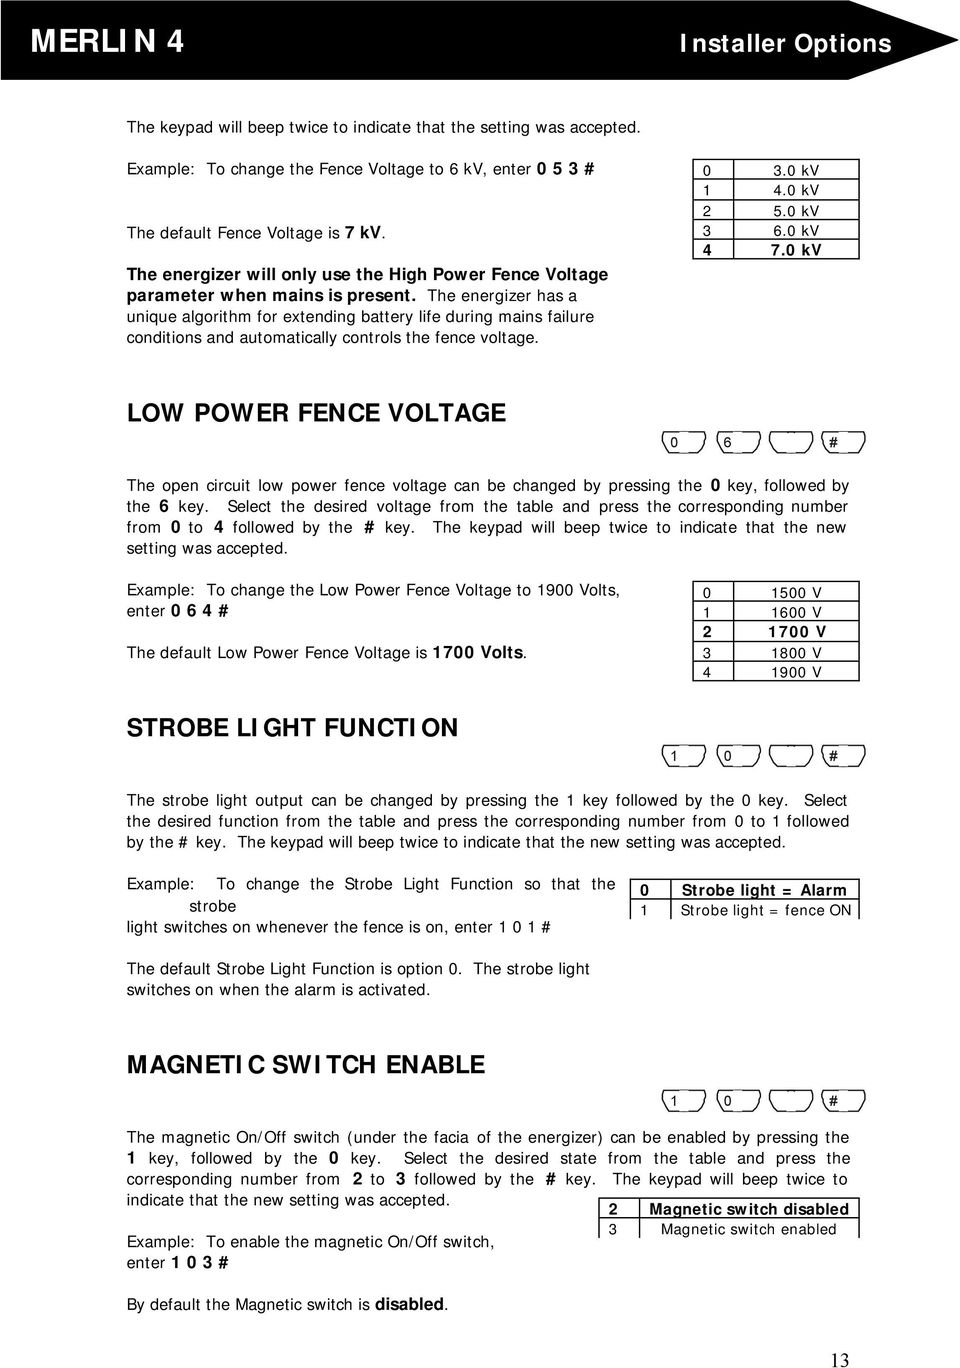 Electric Fence Energiser Pdf Mains Powered Energizers The Energizer Has A Unique Algorithm For Extending Battery Life During Failure Conditions And Automatically